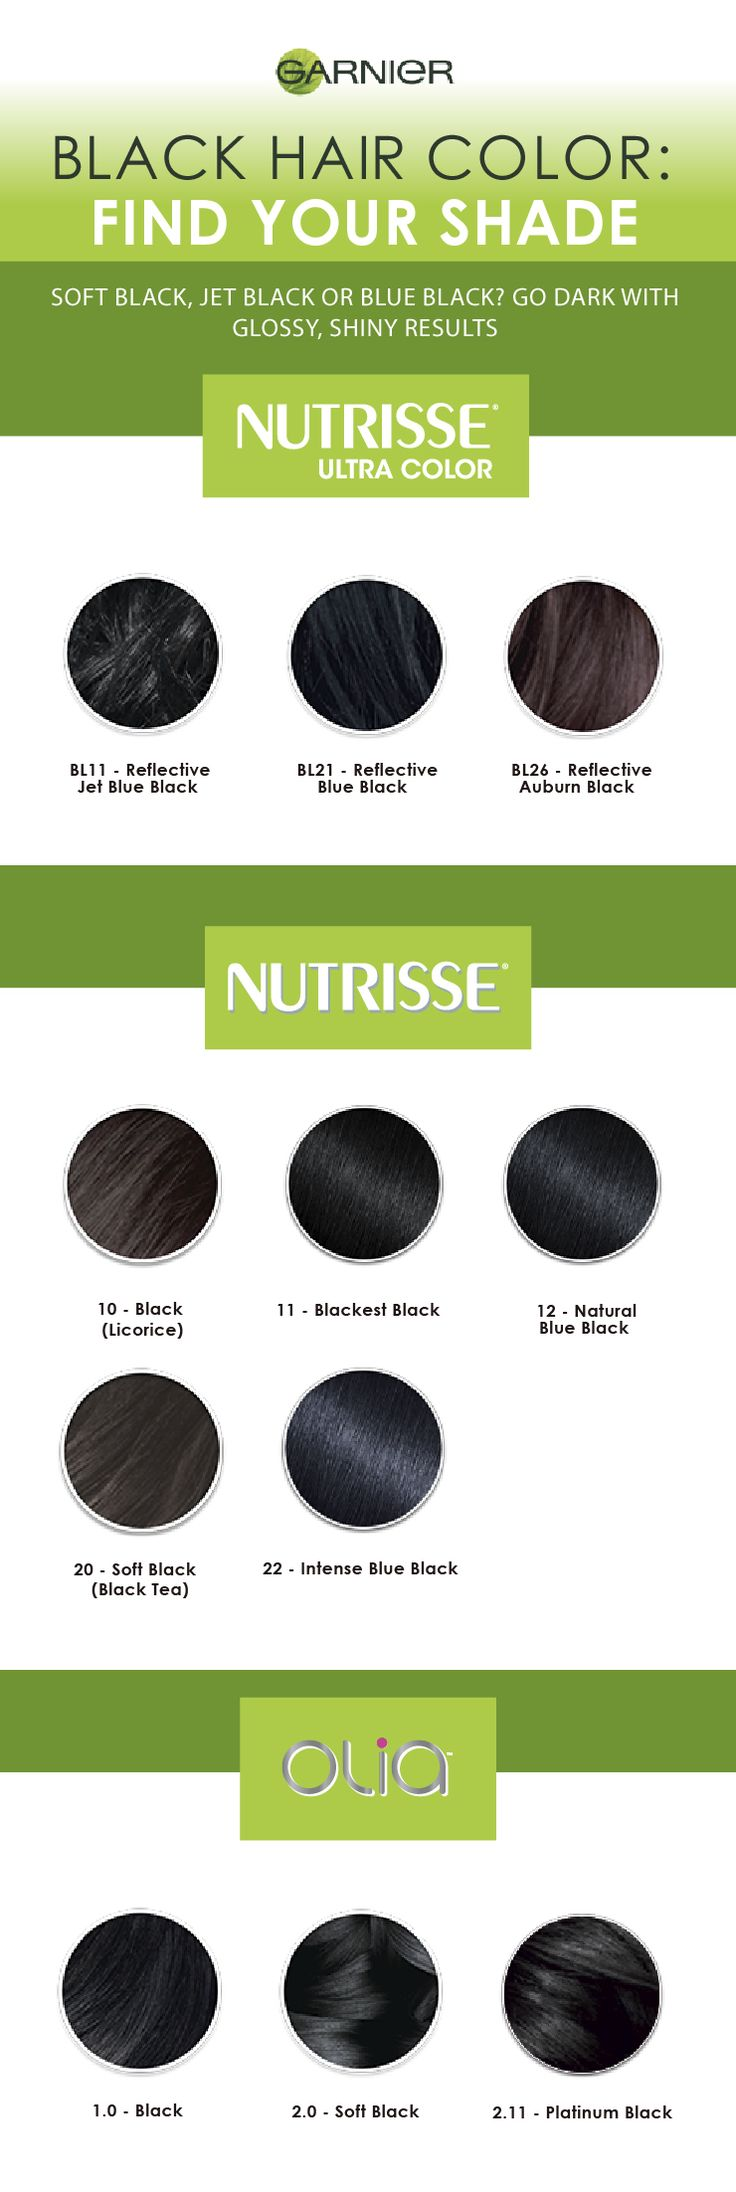 Soft black, jet black, or blue black? Our hair color black list features a comprehensive collection of the darkest shade so you can match new growth when touching up your roots, covering grays with natural-looking results, or updating your color altogether. Find your shade.